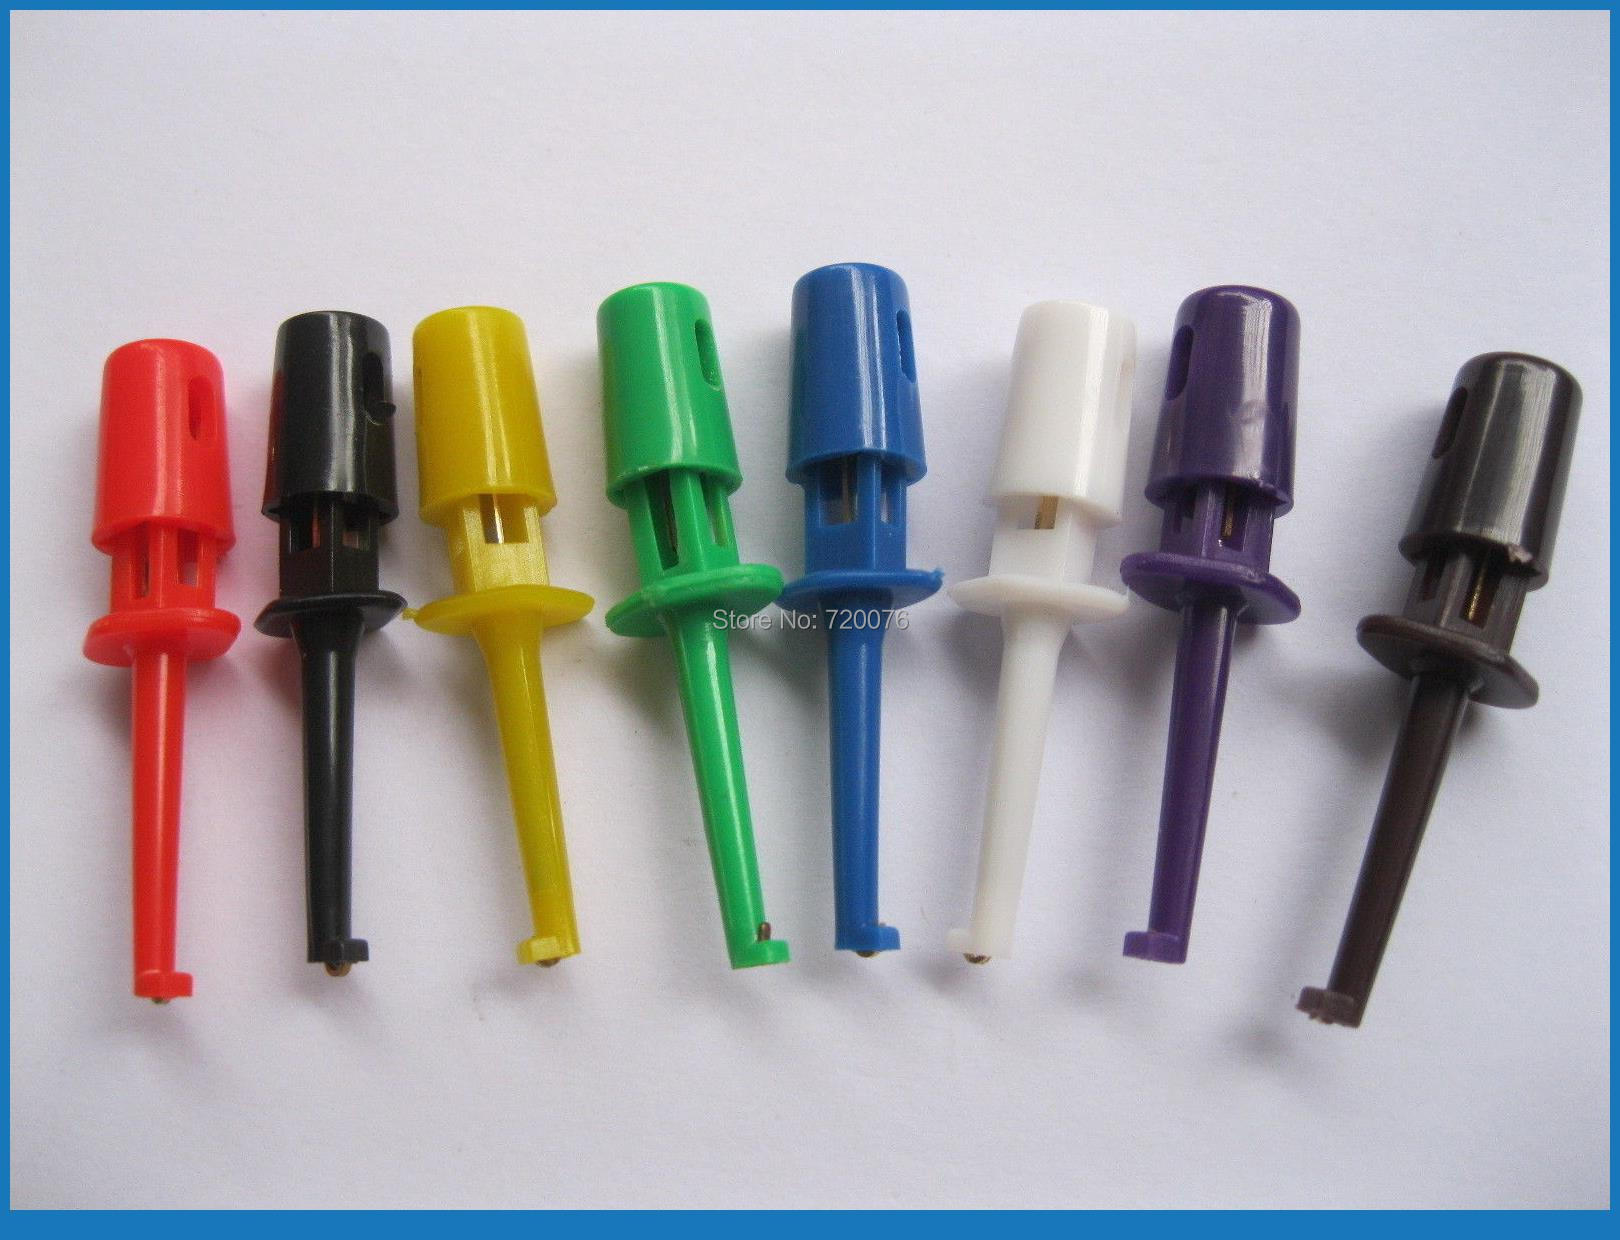 ФОТО 120 pcs (5 Set) Small Test Hook Clip for Multimeter 8 color Side Open Small-size